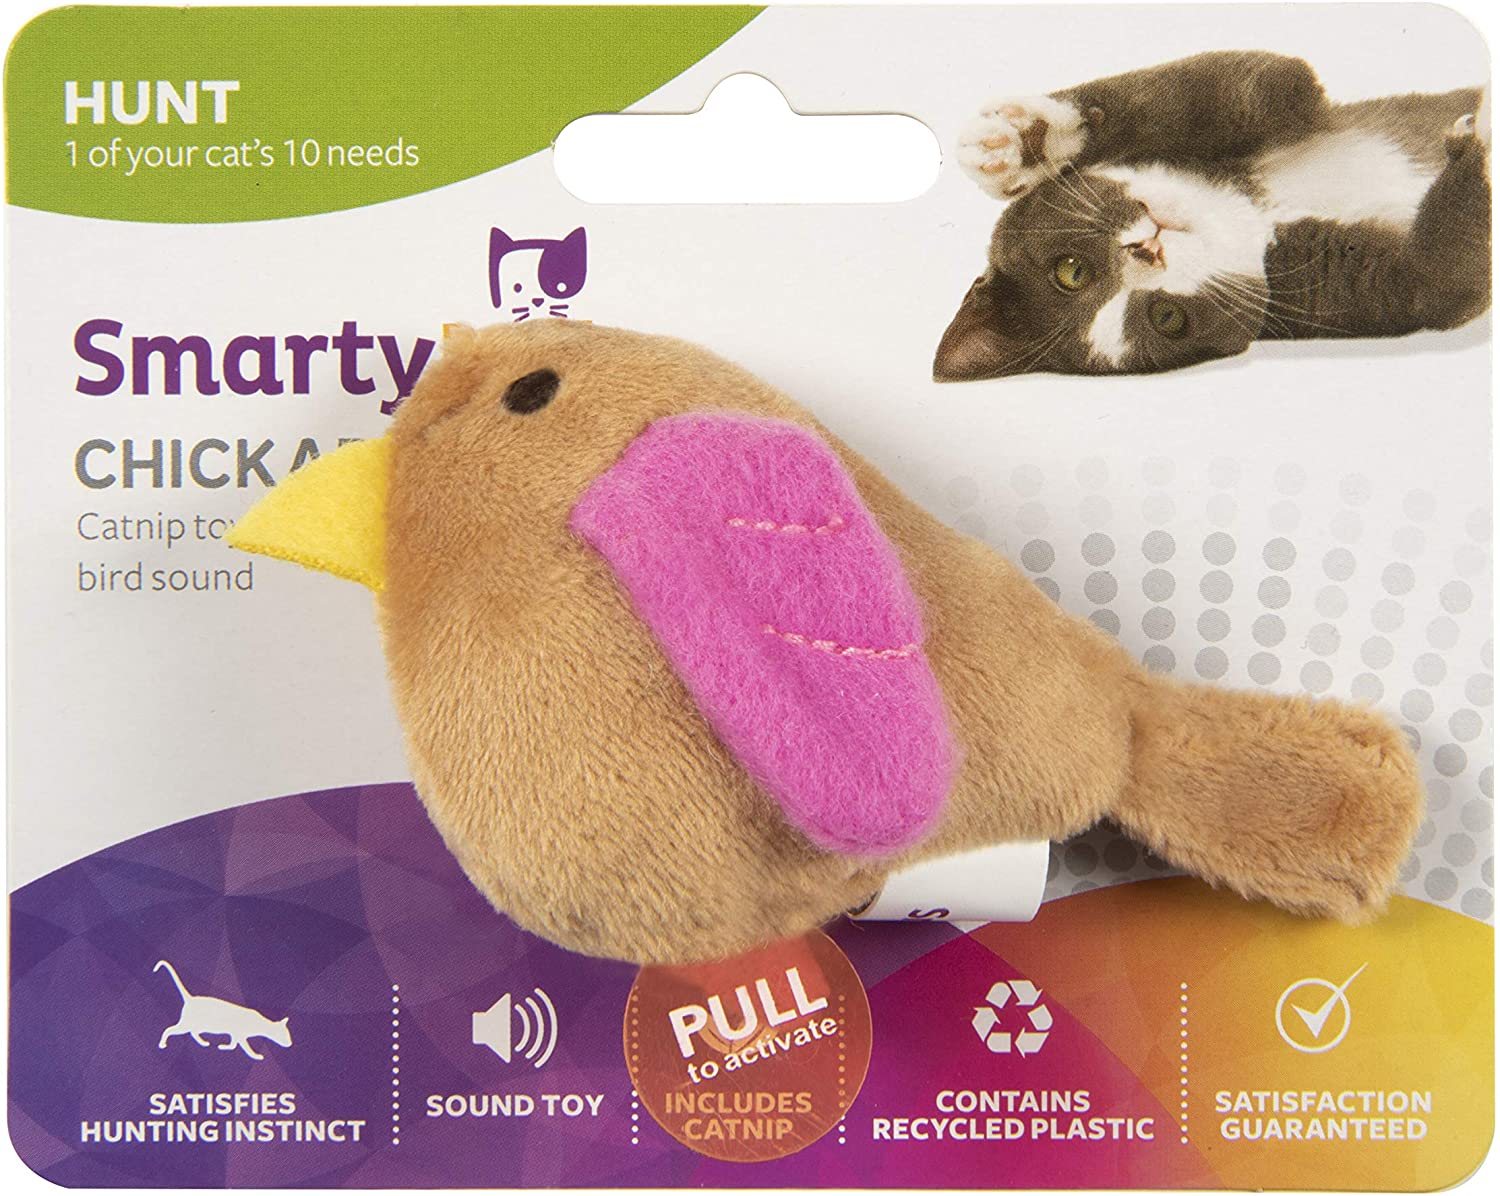 4. SmartyKat Chickadee Chirp Electronic Bird-Sound Cat Toy